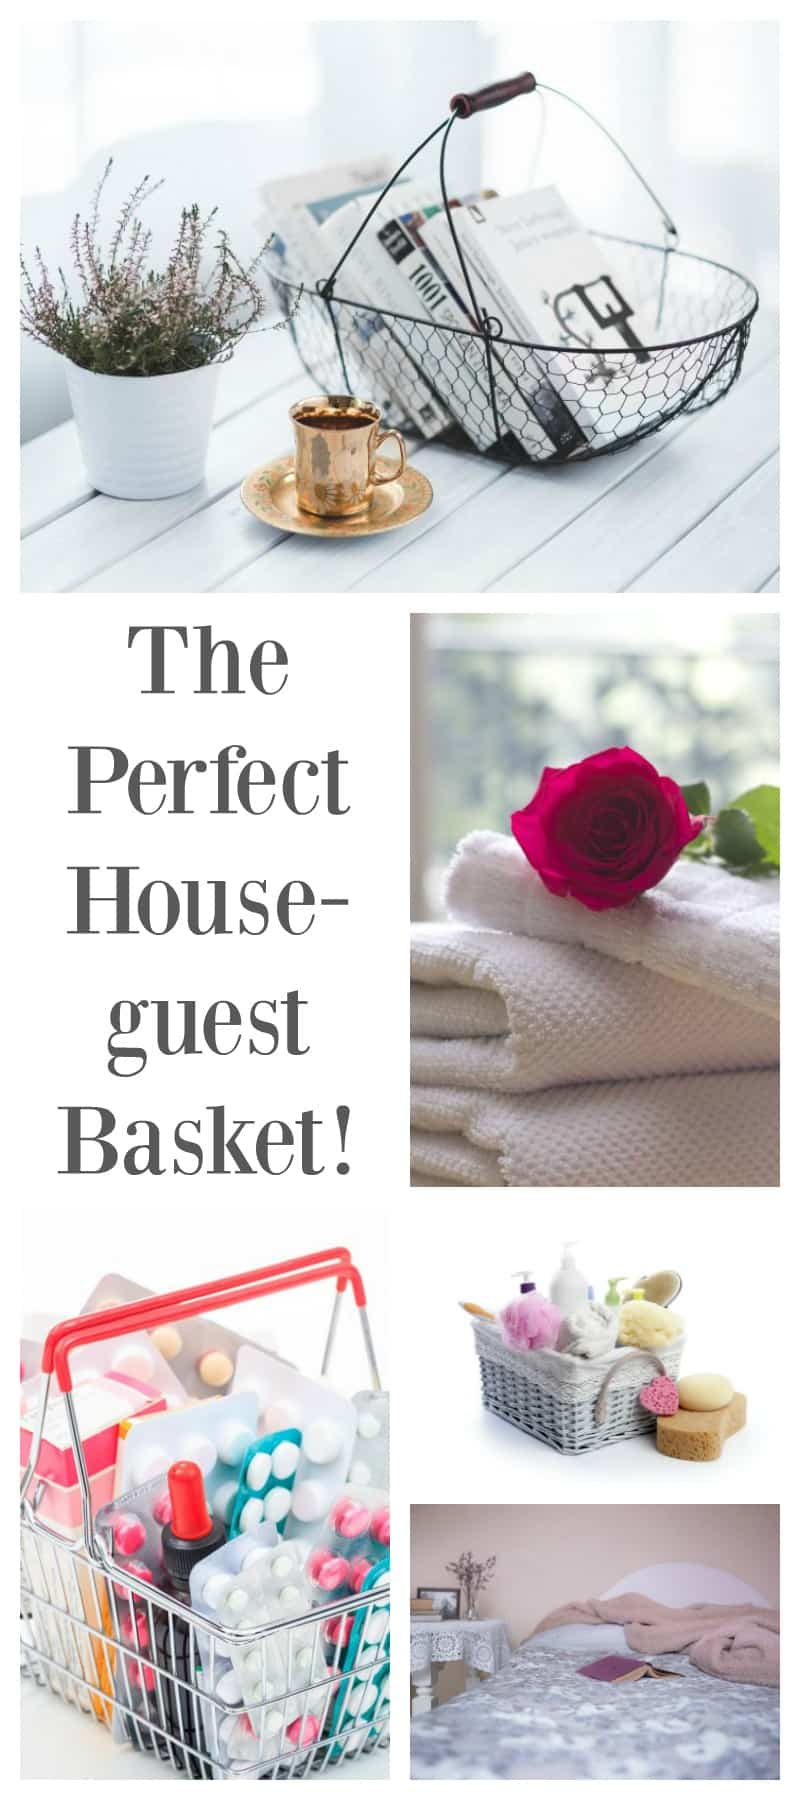 Home- DIY the perfect house guest basket